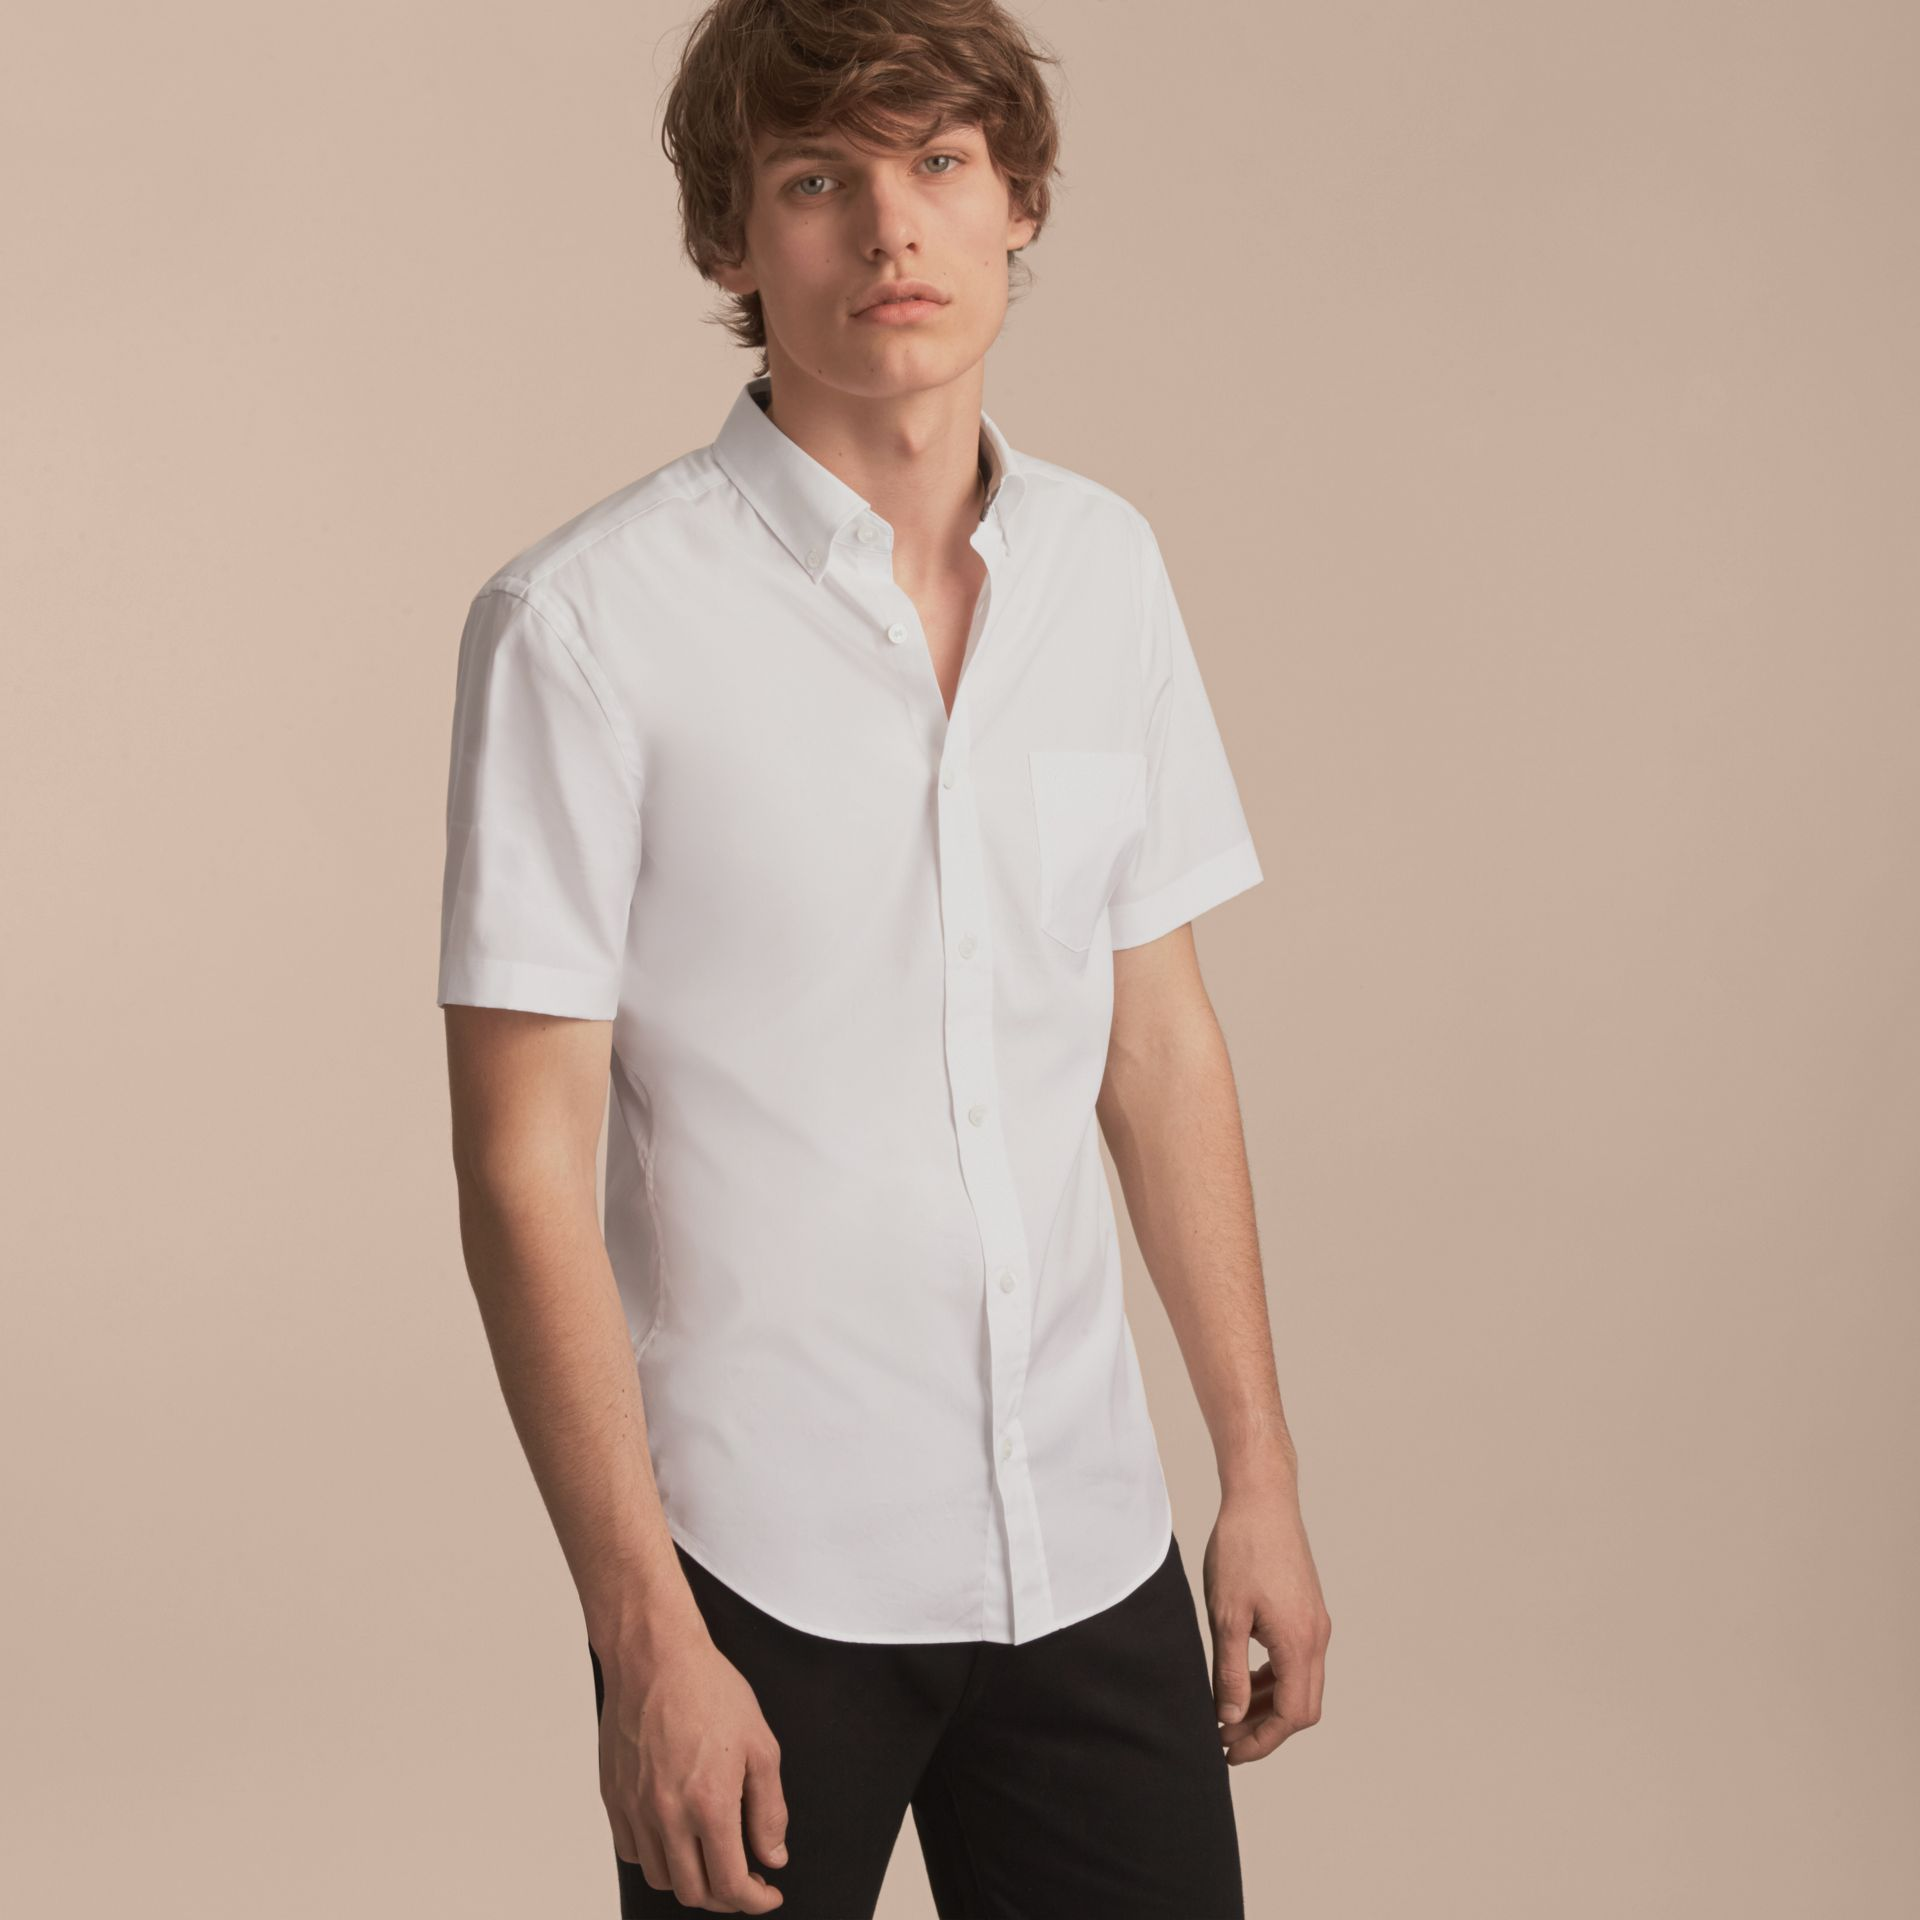 White Short-sleeved Stretch Cotton Poplin Shirt White - gallery image 6